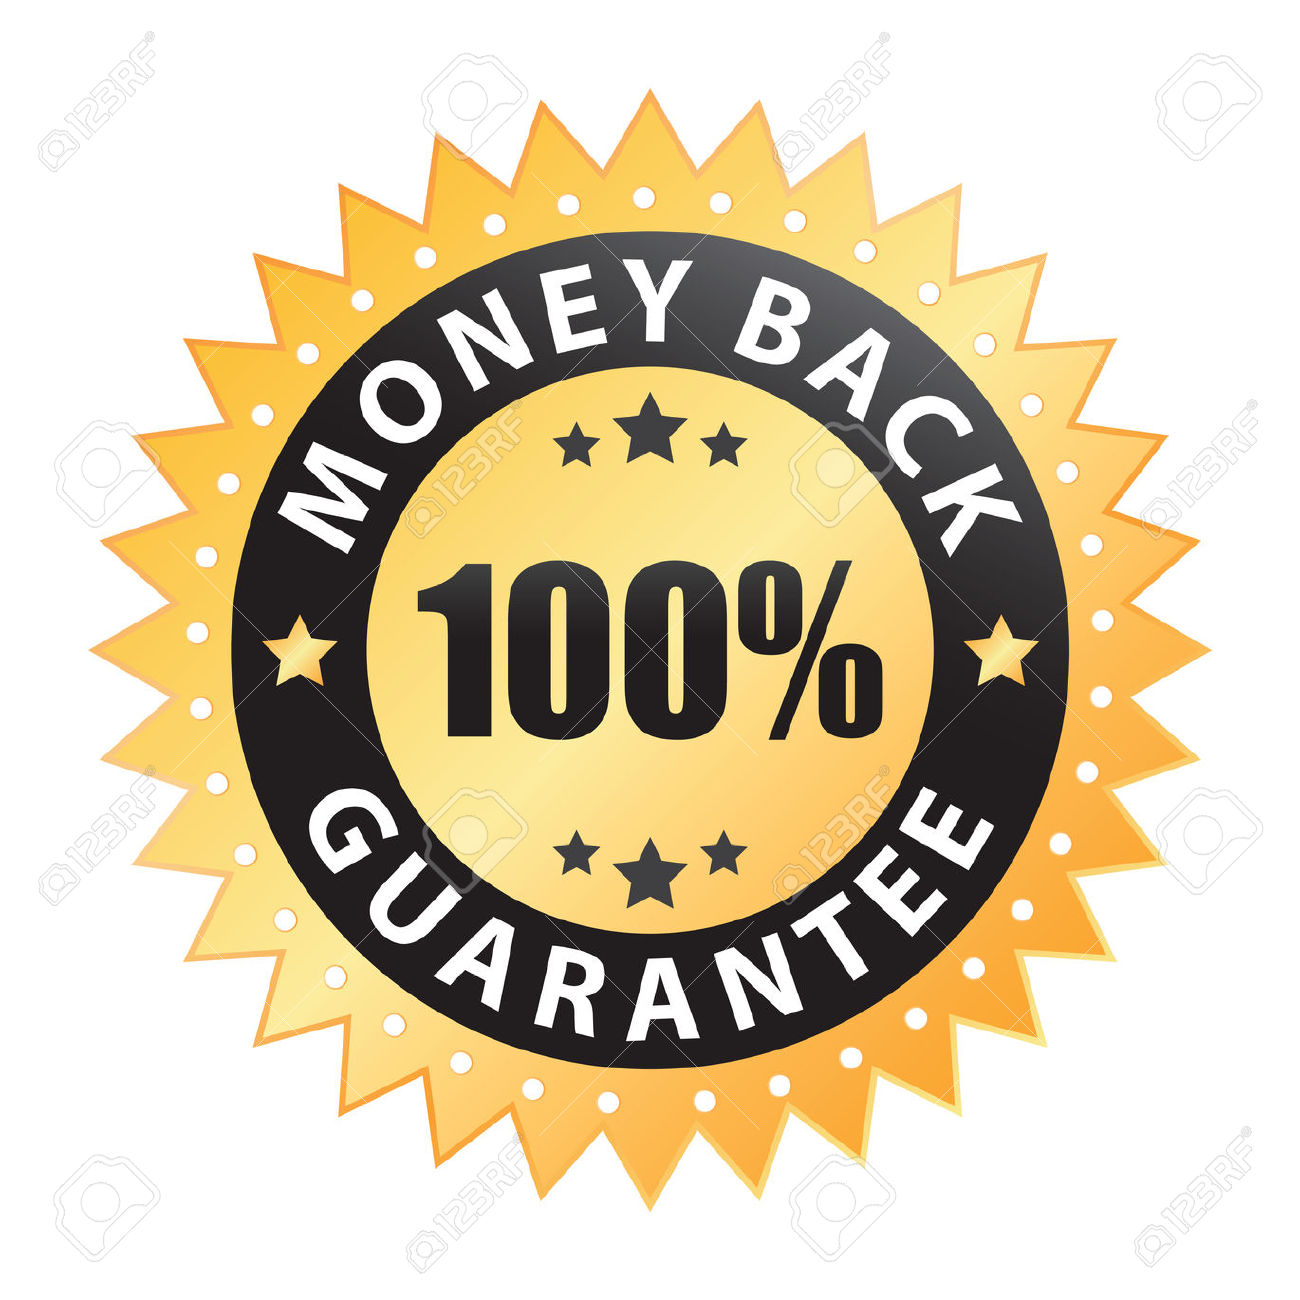 6168626-100-money-back-guarantee-label-Stock-Vector.jpg